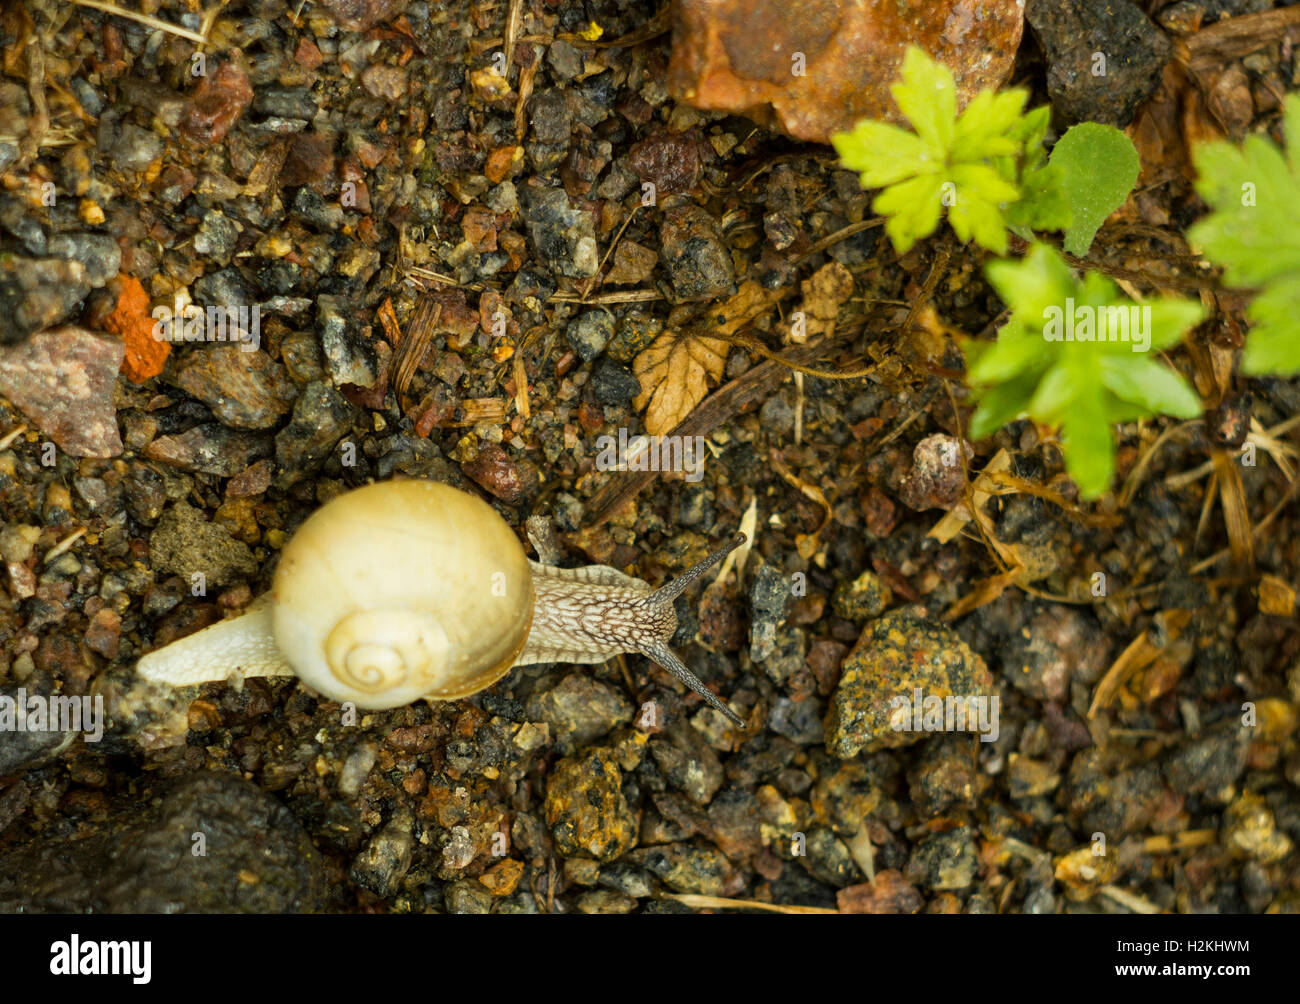 Snail in shell on road in summer, top view - Stock Image